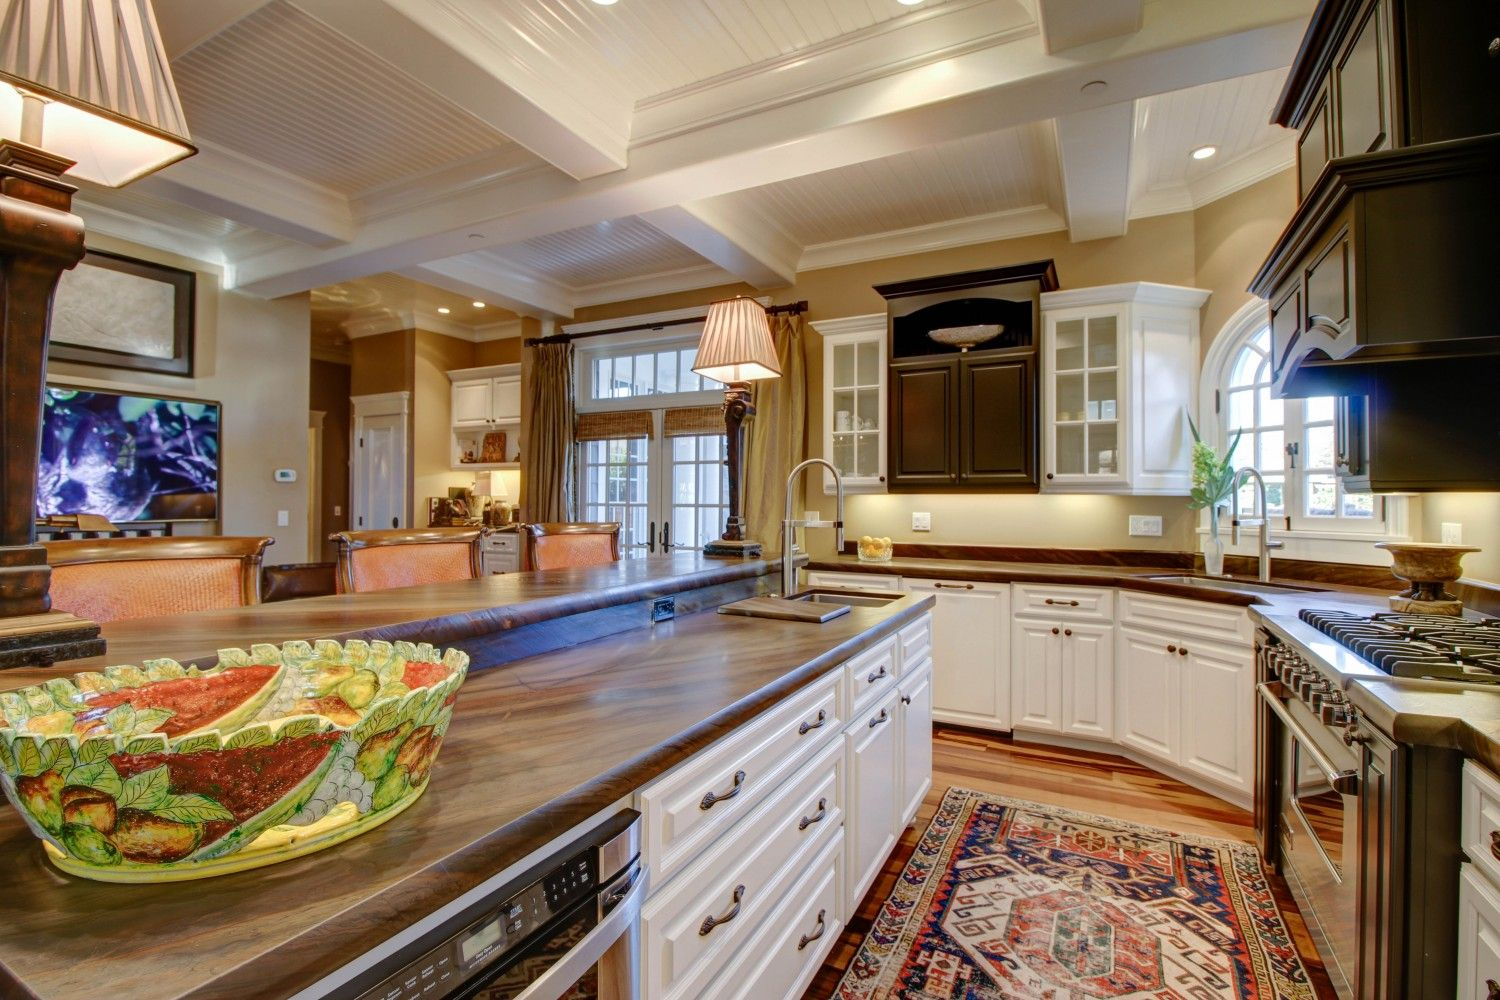 The open-concept gourmet kitchen is an entertainer's dream, appointed with top-of-the-line appliances and honed granite counters with custom cabinetry.